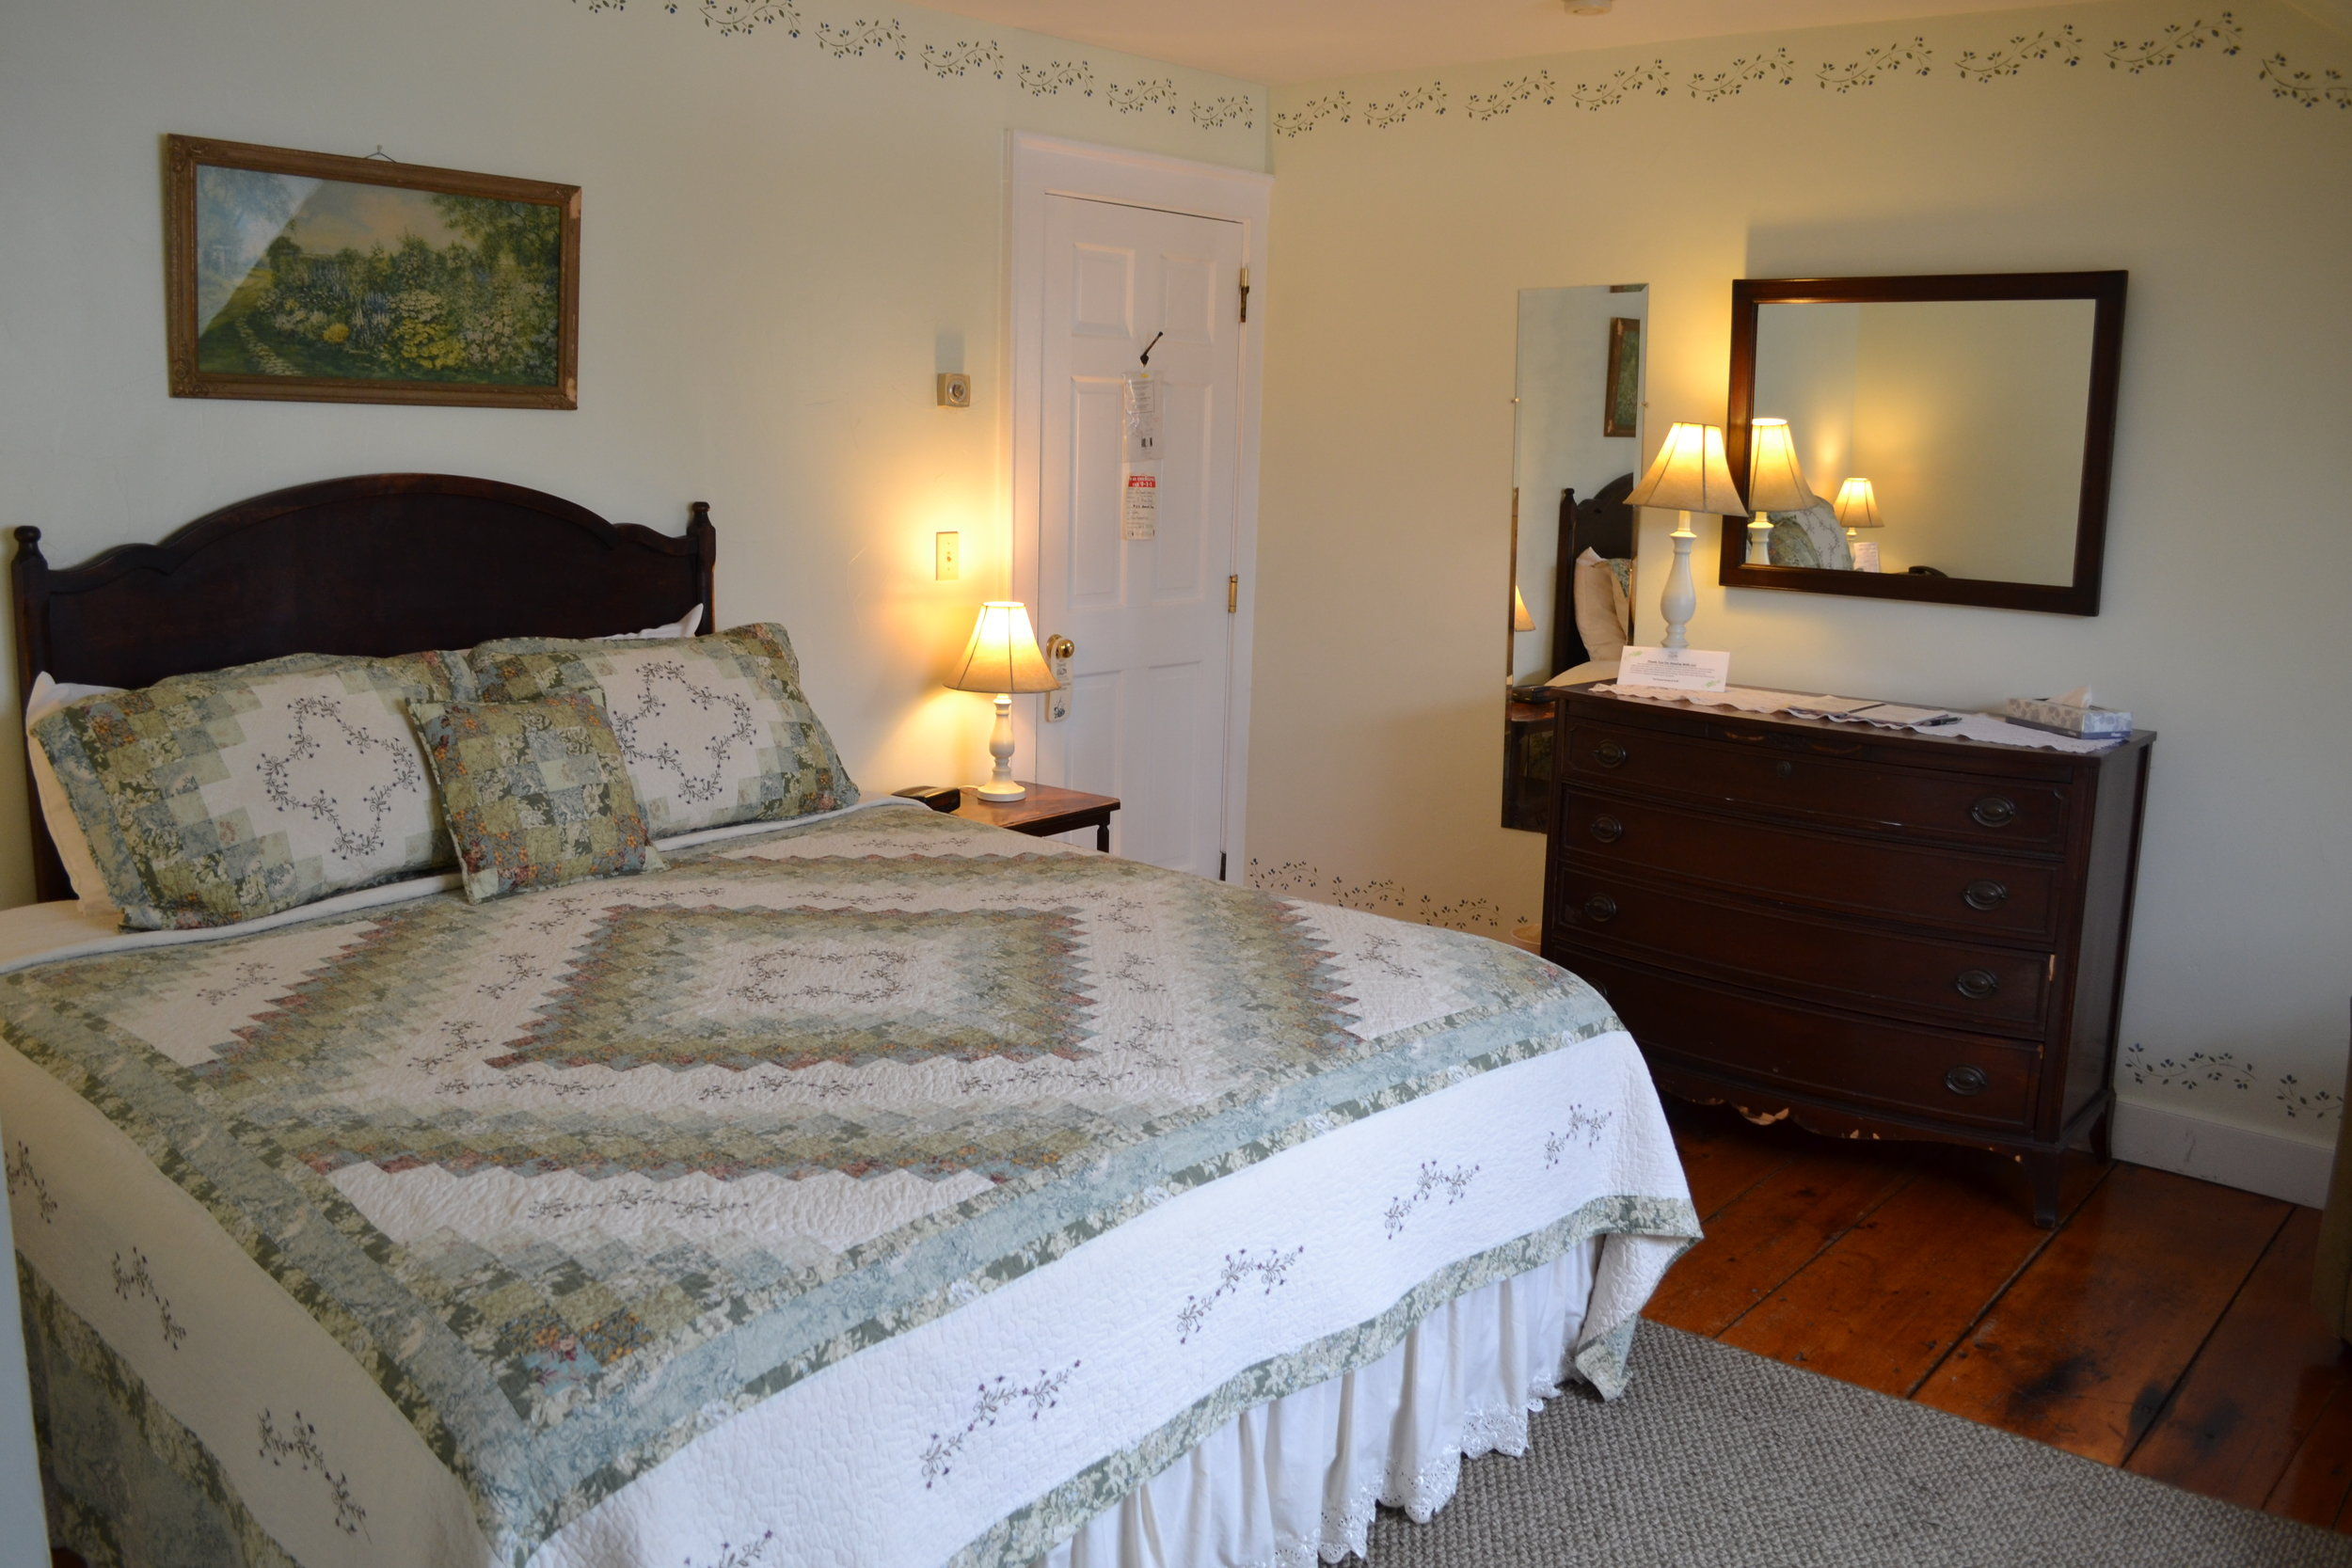 The Maxwell Room - The Dowds' Country Inn - Lyme, NH